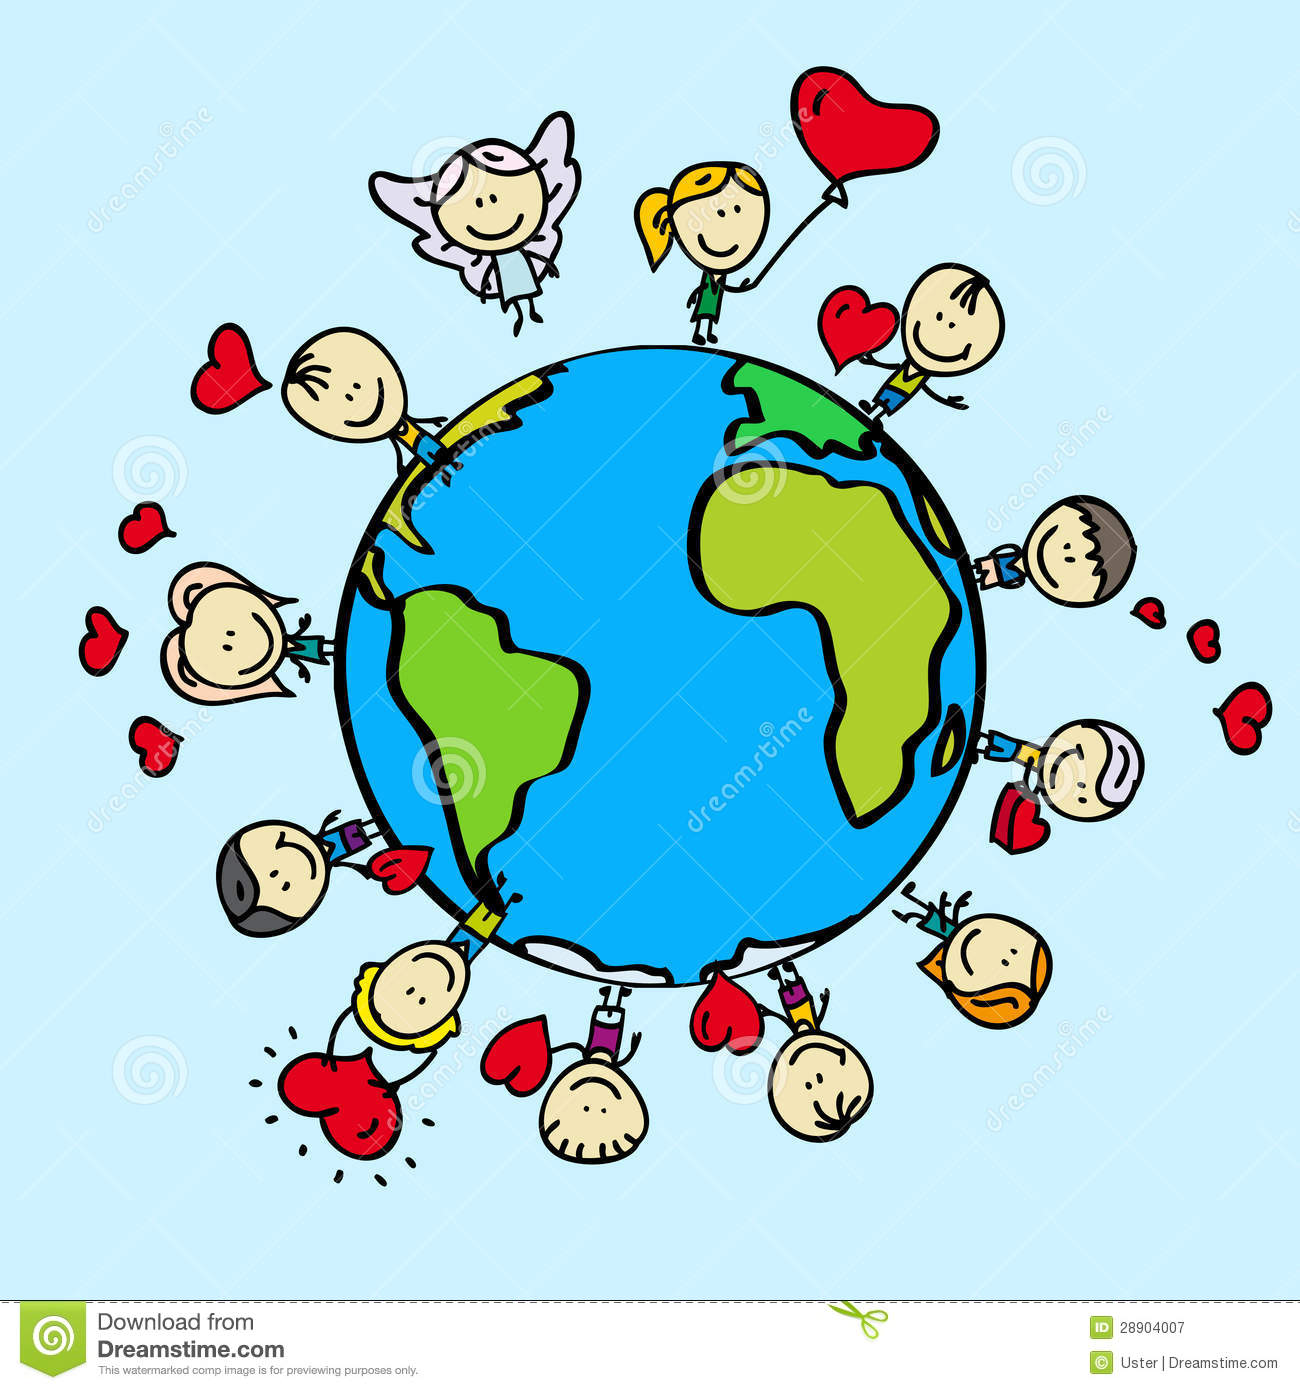 Love Earth Royalty Free Stock Photography - Image: 28904007